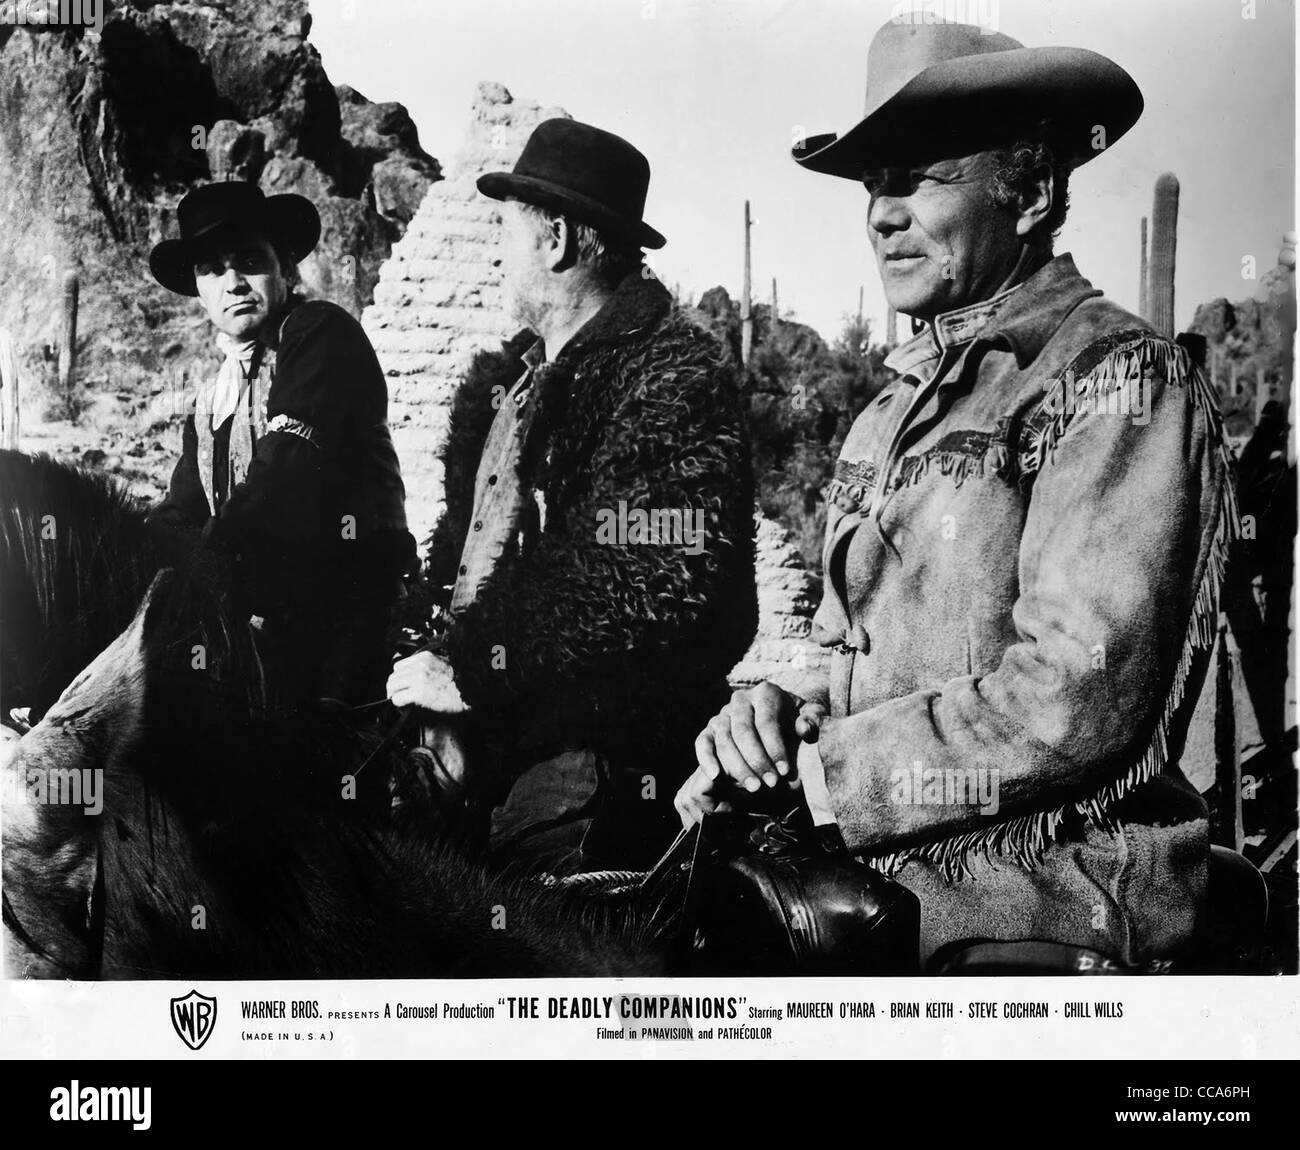 THE DEADLY COMPANIONS (1961) BRIAN KEITH, STEVE COCHRAN, CHILL WILLS SAM PECKINPAH (DIR) 001 MOVIESTORE COLLECTION - Stock Image